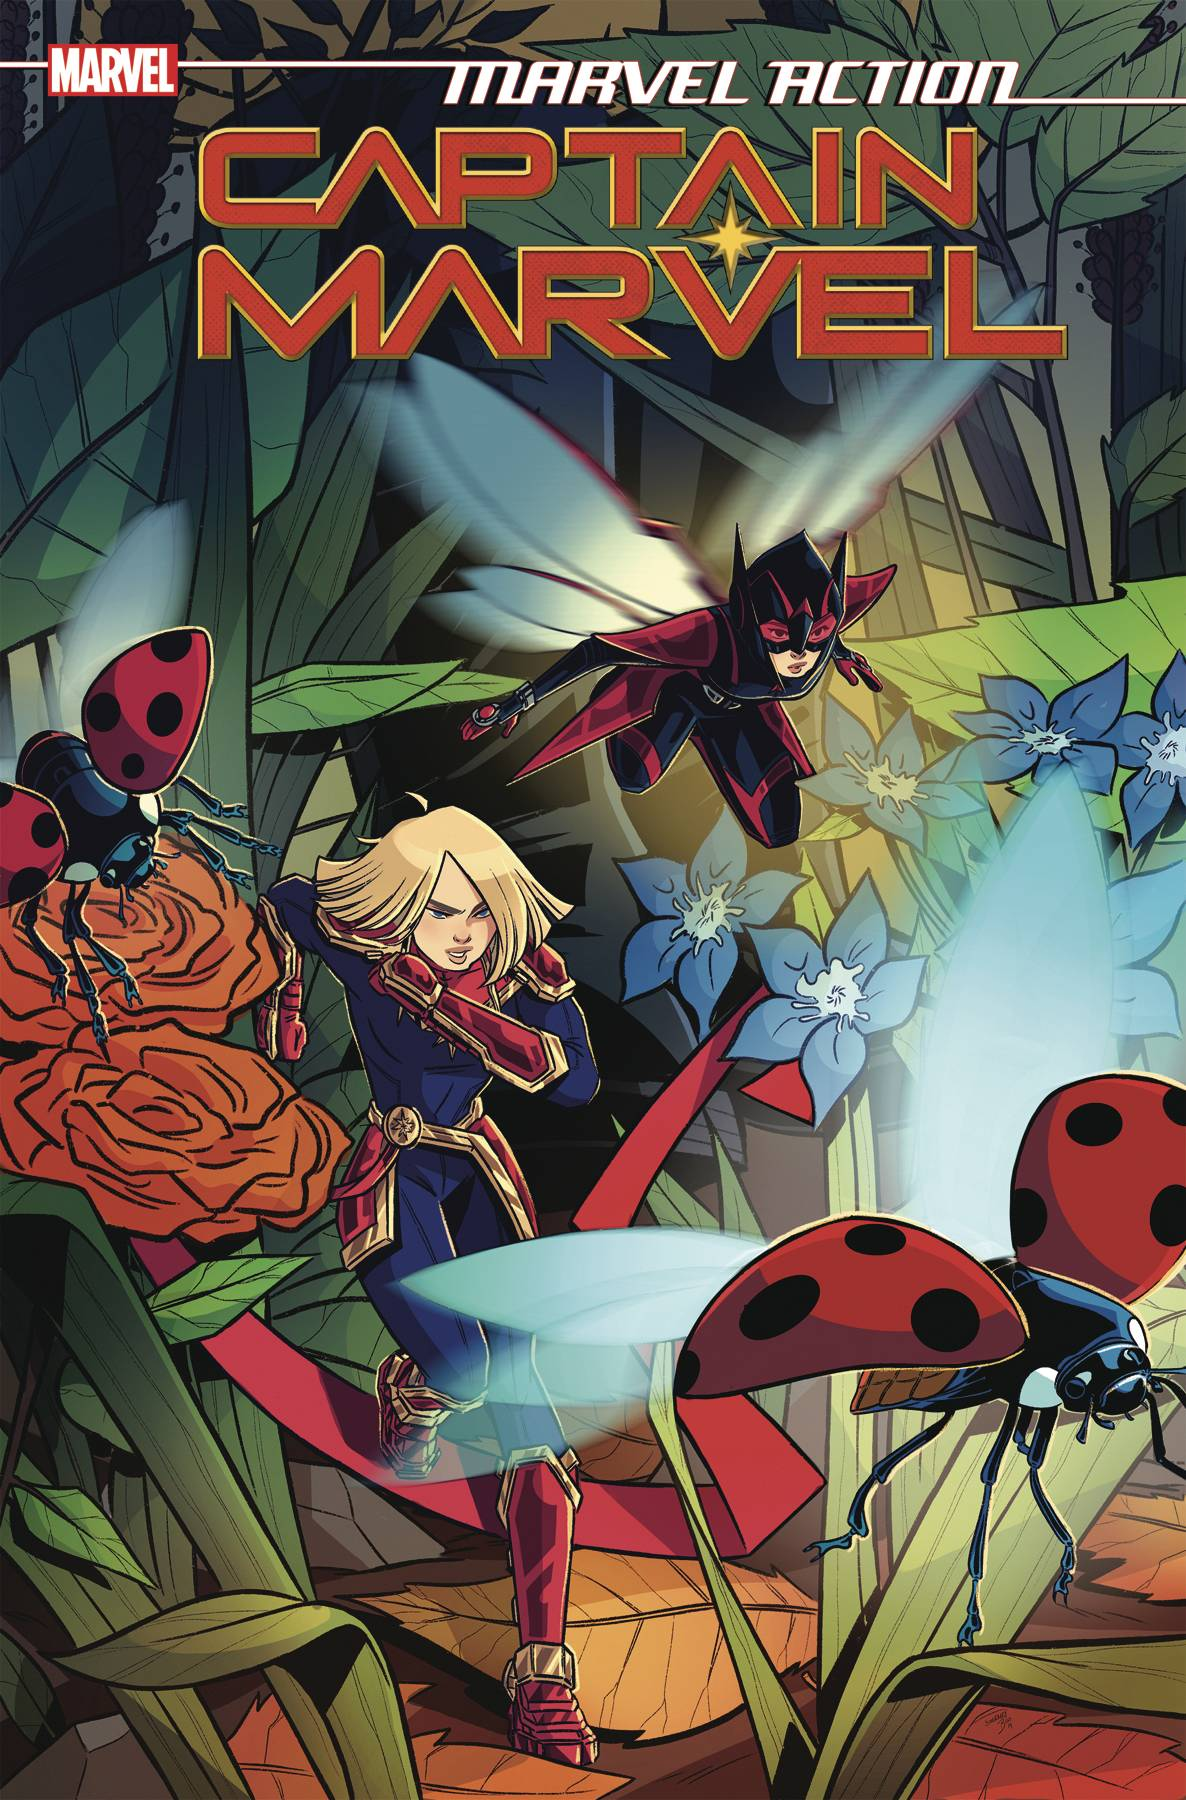 MARVEL ACTION CAPTAIN MARVEL #5 CVR A BOO (C: 1-0-0)